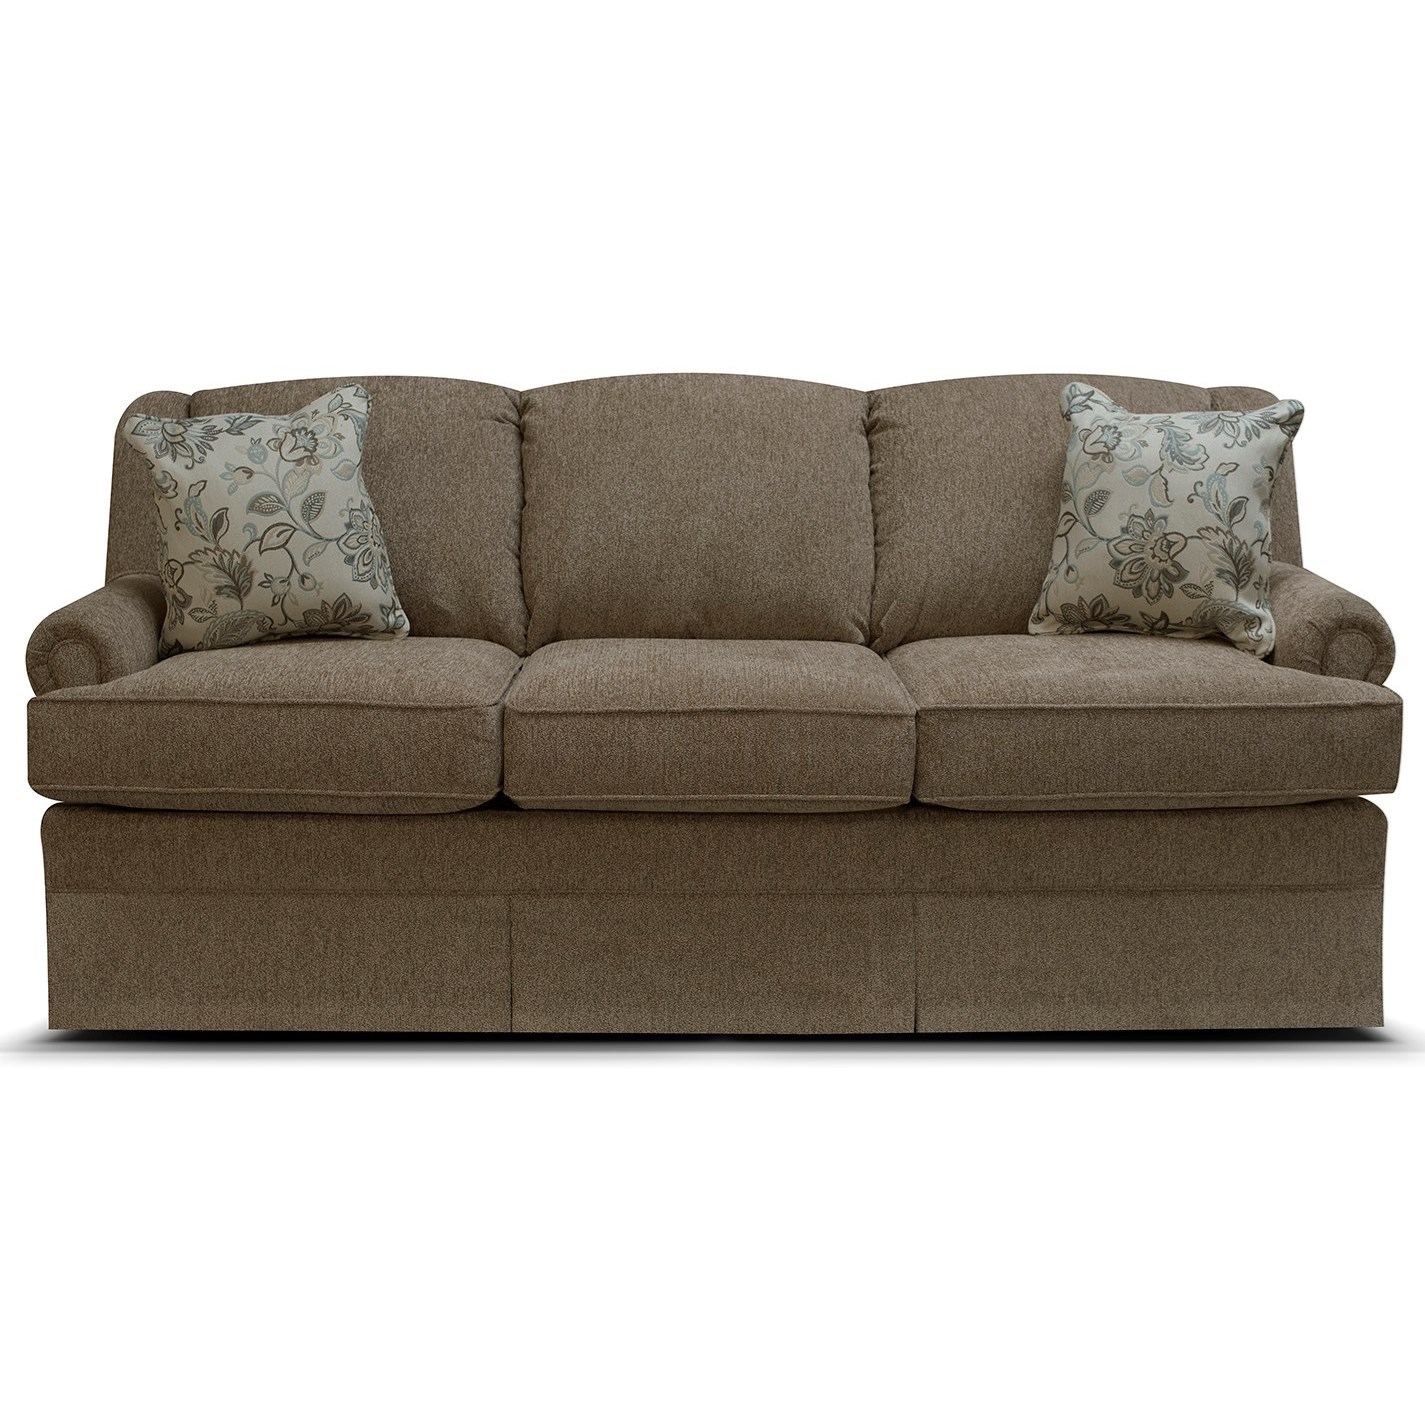 Rochelle Sofa by England at H.L. Stephens